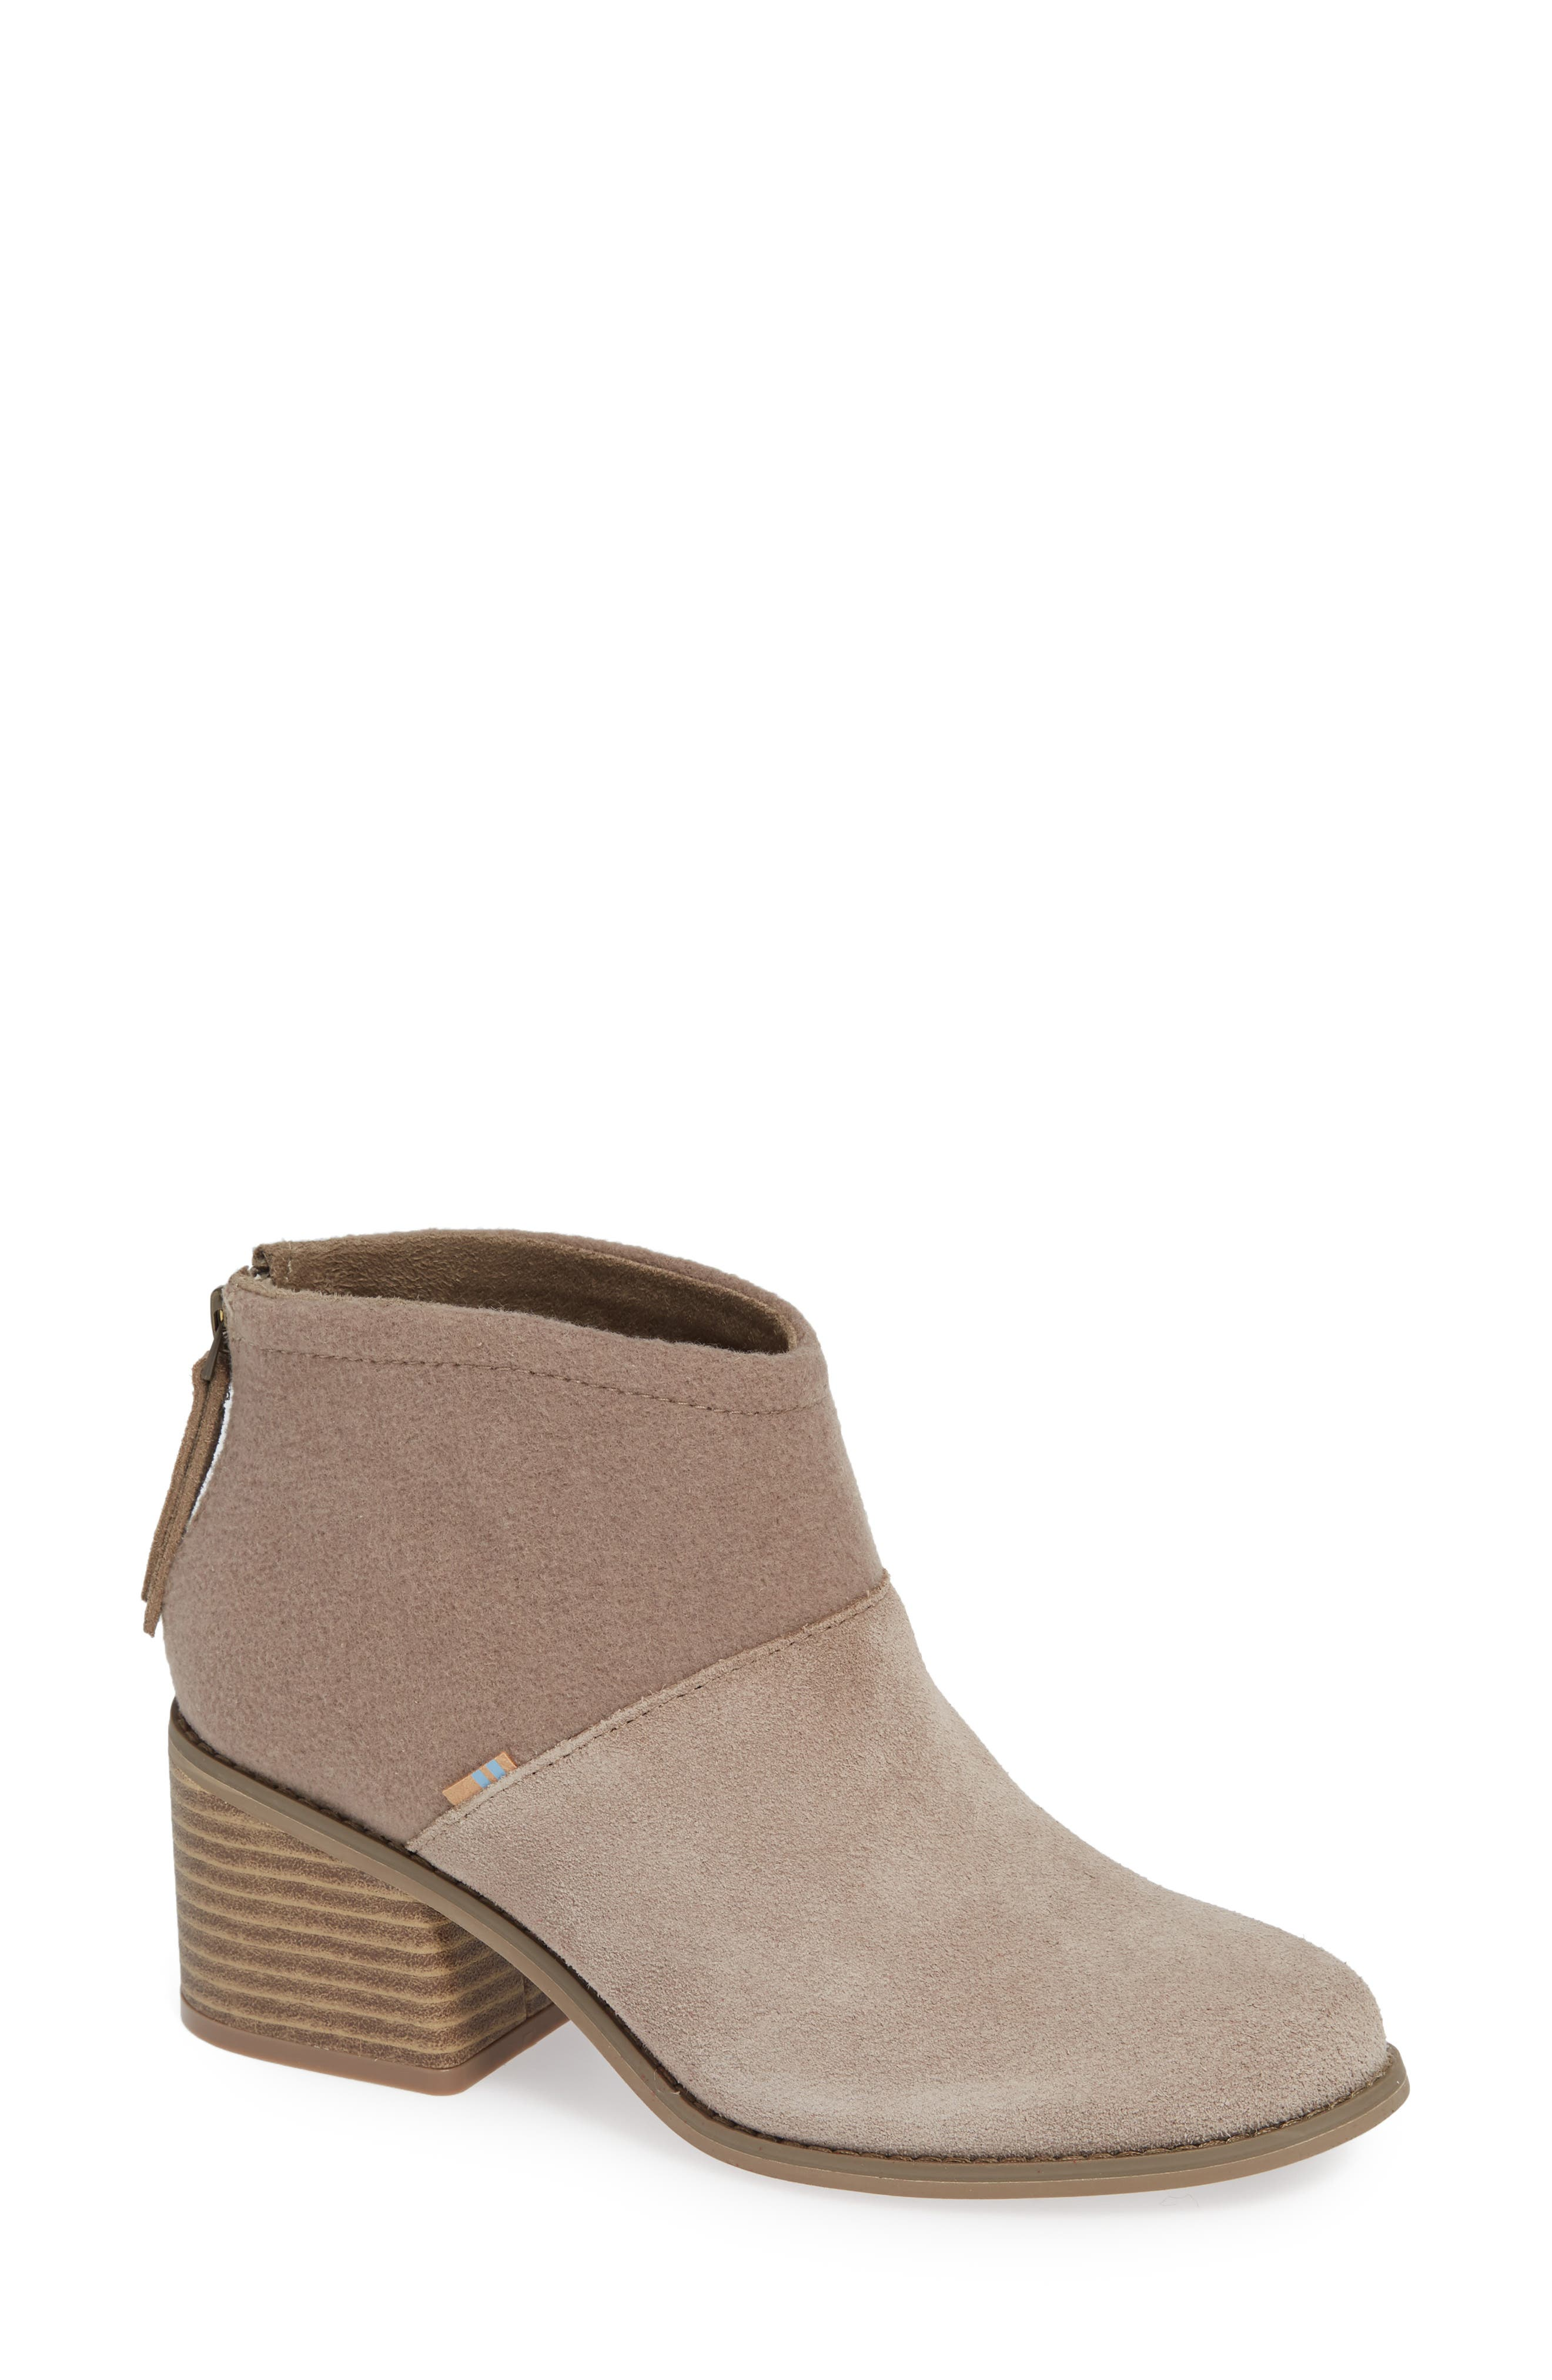 f857b870472 Women s TOMS Booties   Ankle Boots